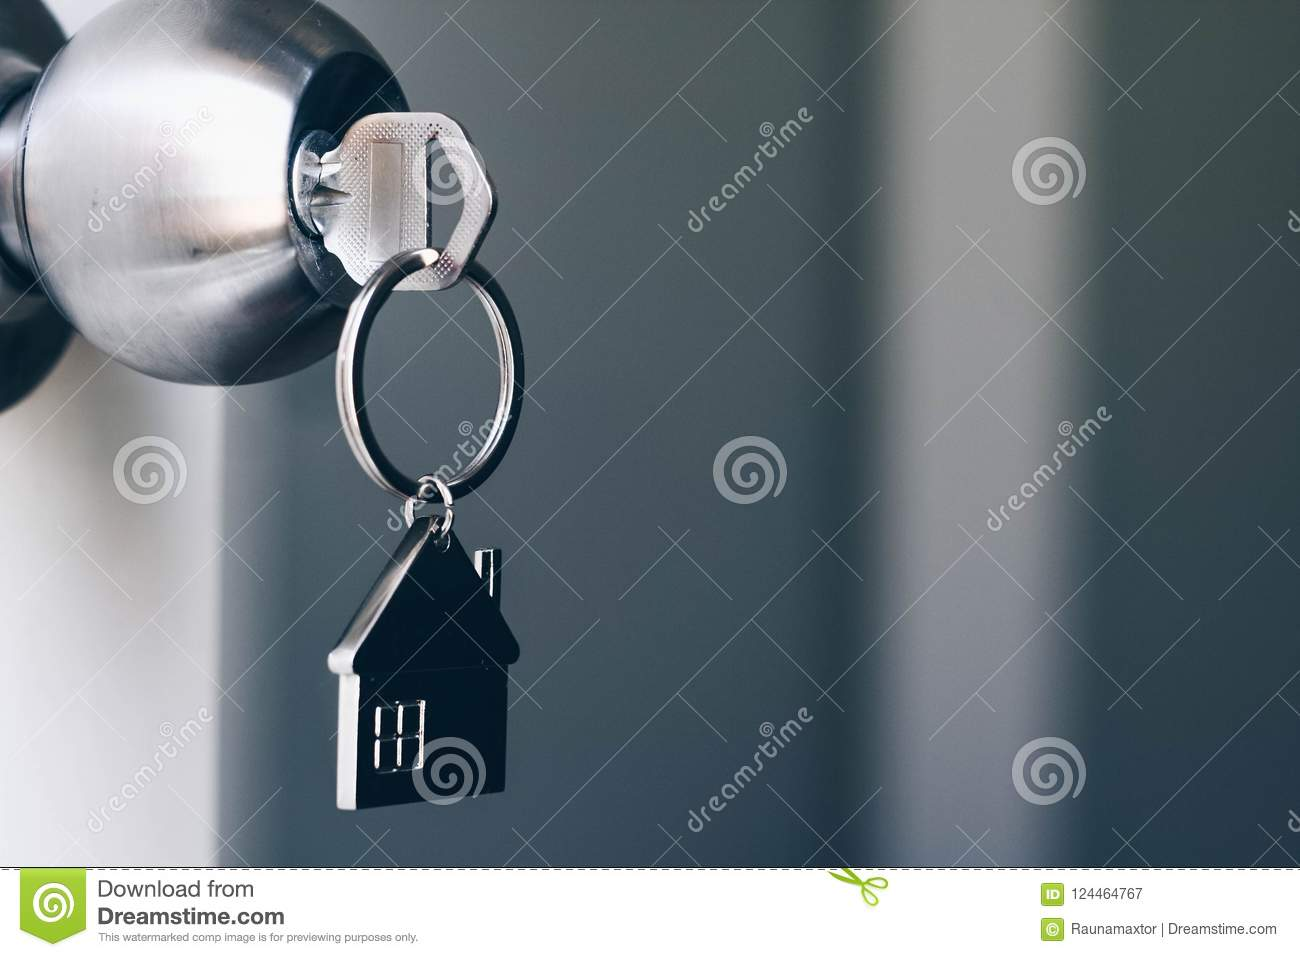 Property Concept, Home key with metal house keychain in keyhole